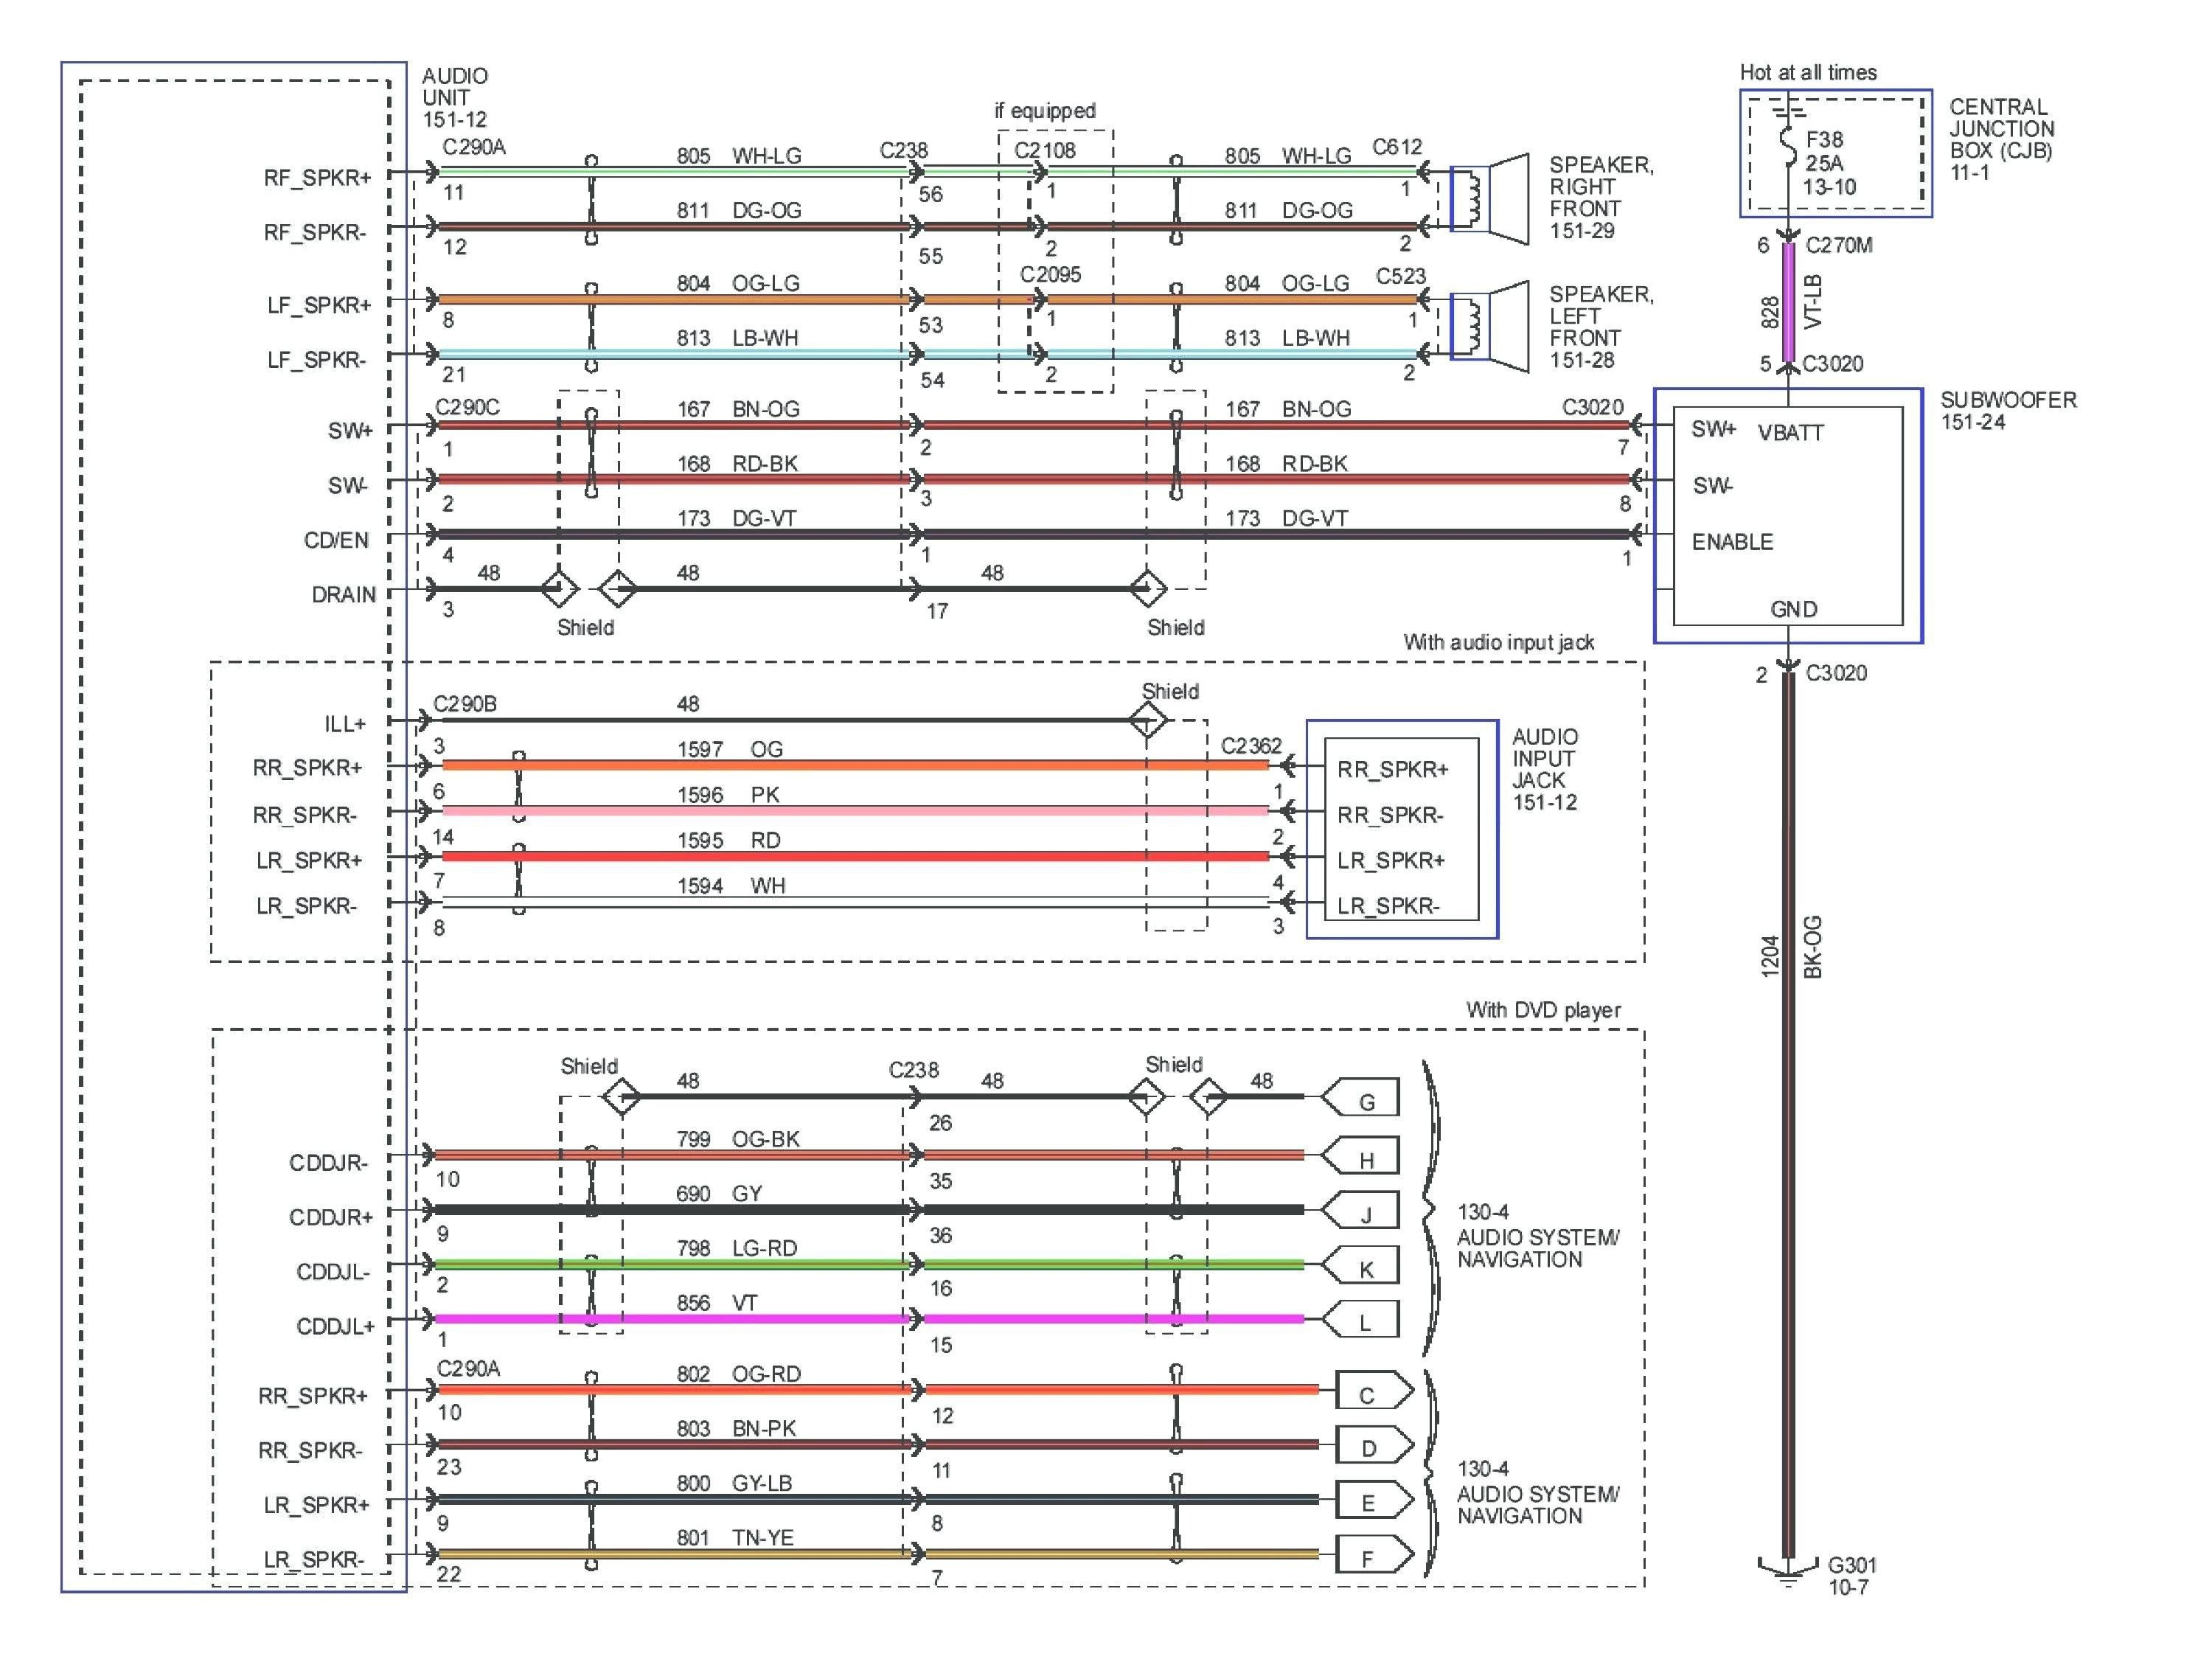 [DIAGRAM_5LK]  DIAGRAM] Avh 270 Bt Wiring Diagram FULL Version HD Quality Wiring Diagram -  PIN2DMDSCHEMATIC44.ARBREDESVOIX.FR | Pioneer Avh 270bt Wiring Diagram Colors |  | arbredesvoix.fr